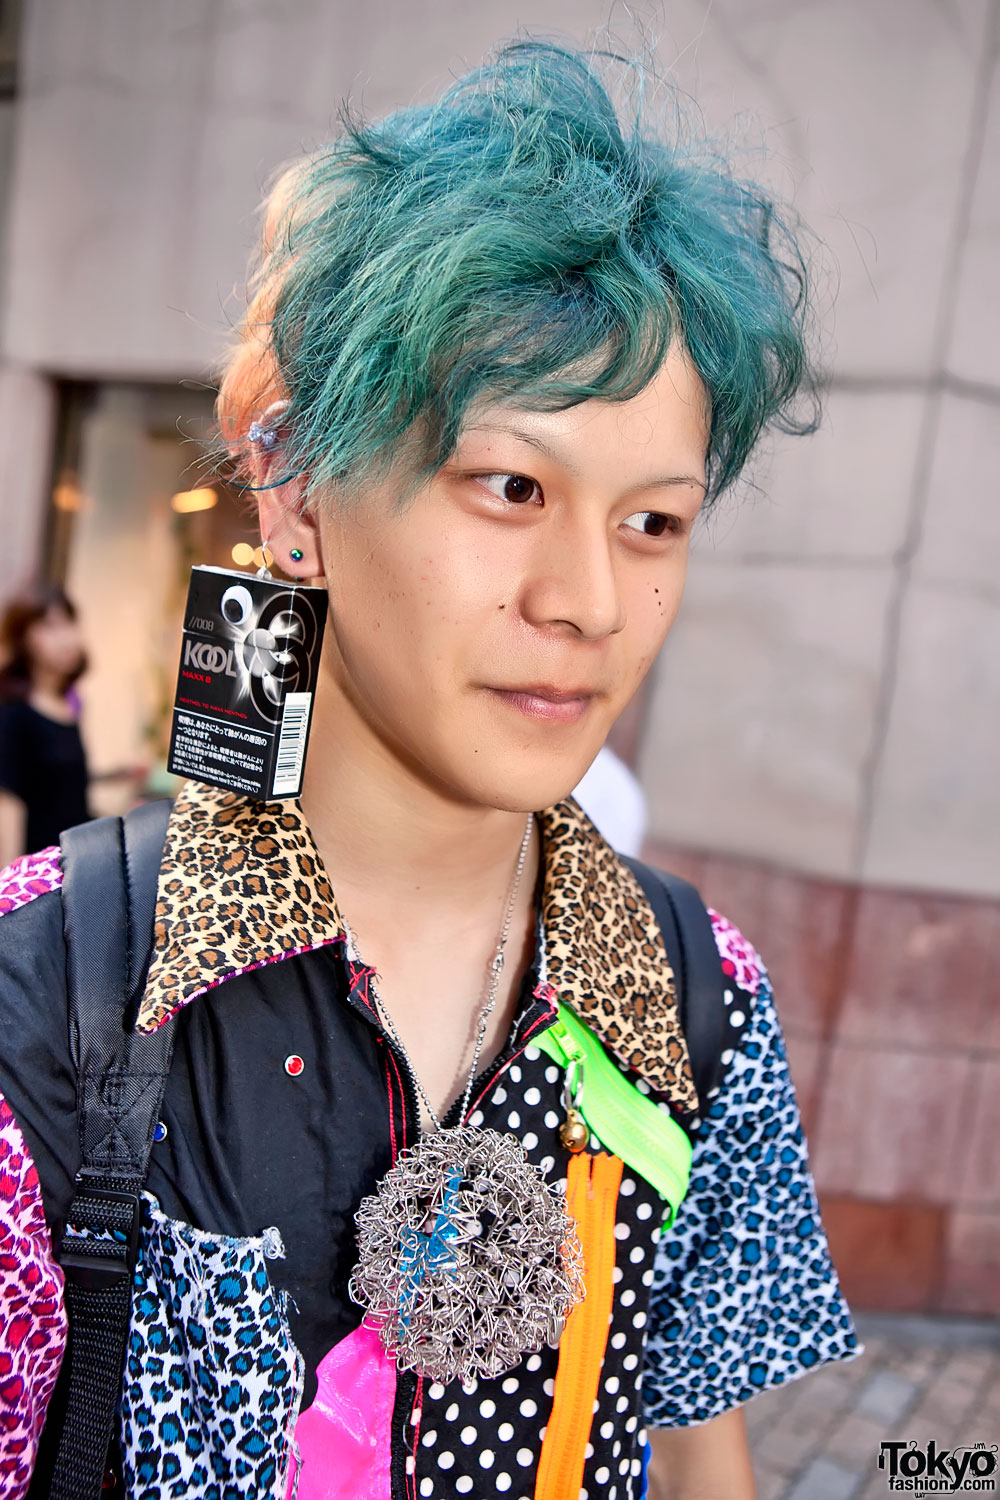 Japanese Guy W Blue Green Hair Cigarette Box Earring Drop Crotch